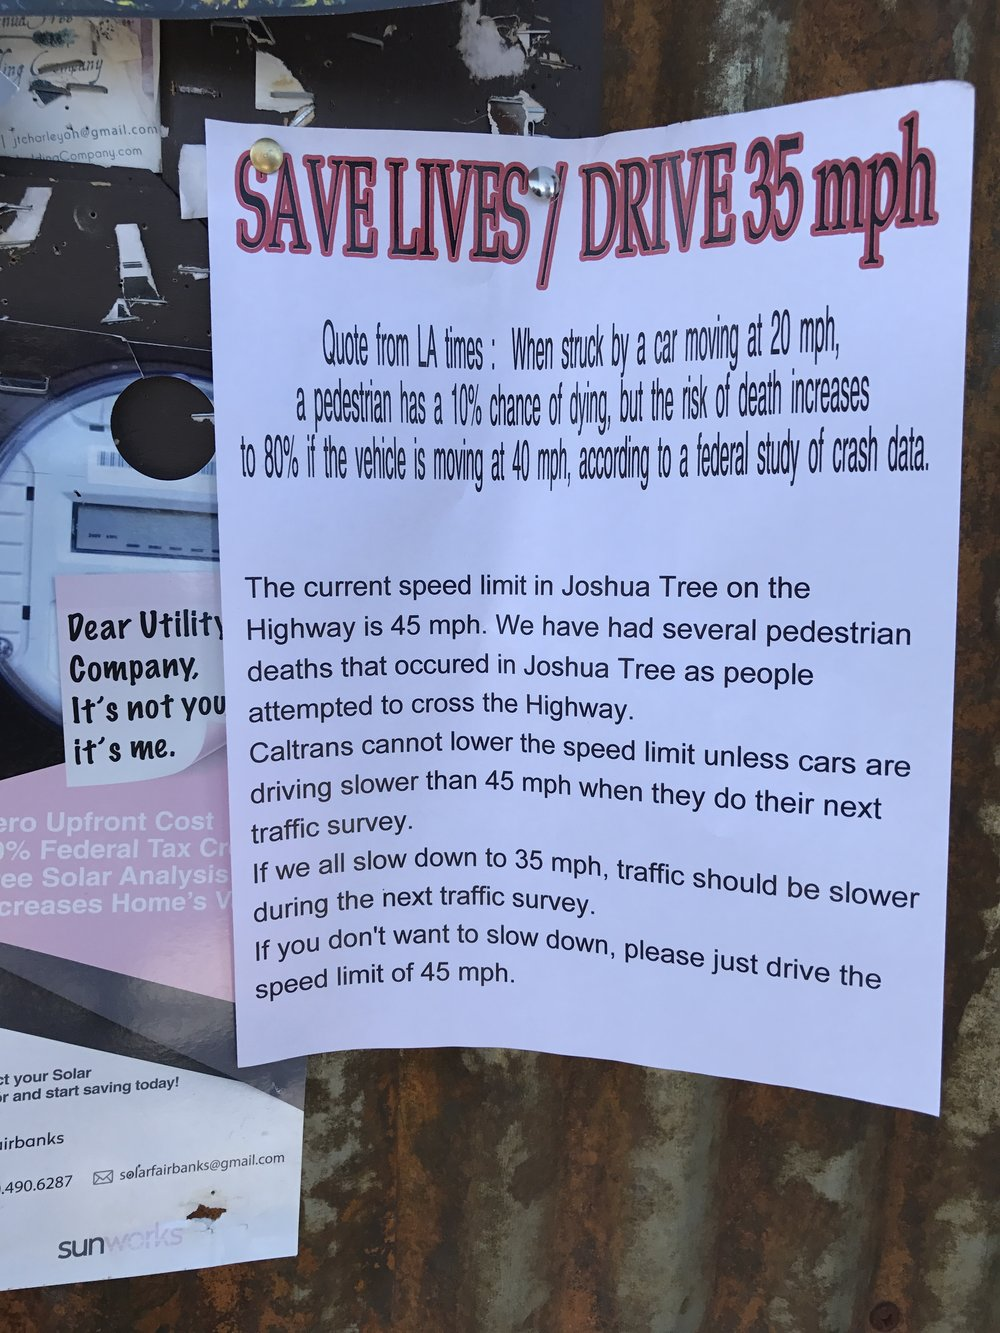 A flyer advocating lower speed limits in Joshua Tree, CA, April 2017.